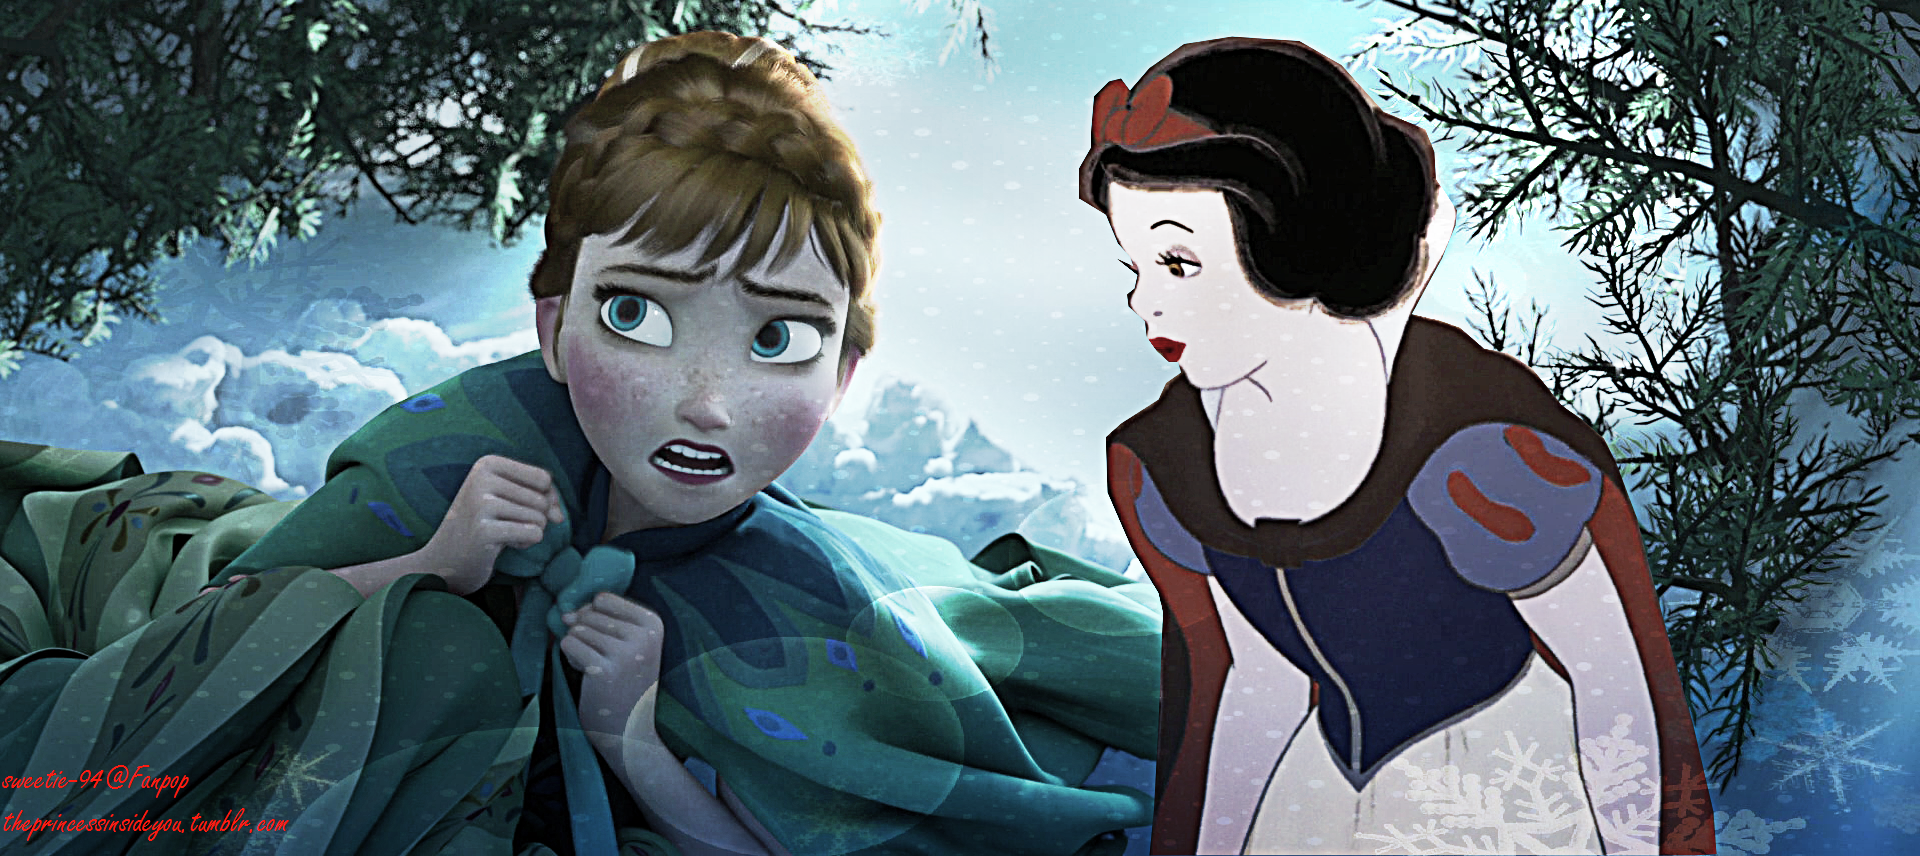 Anna and Snow White